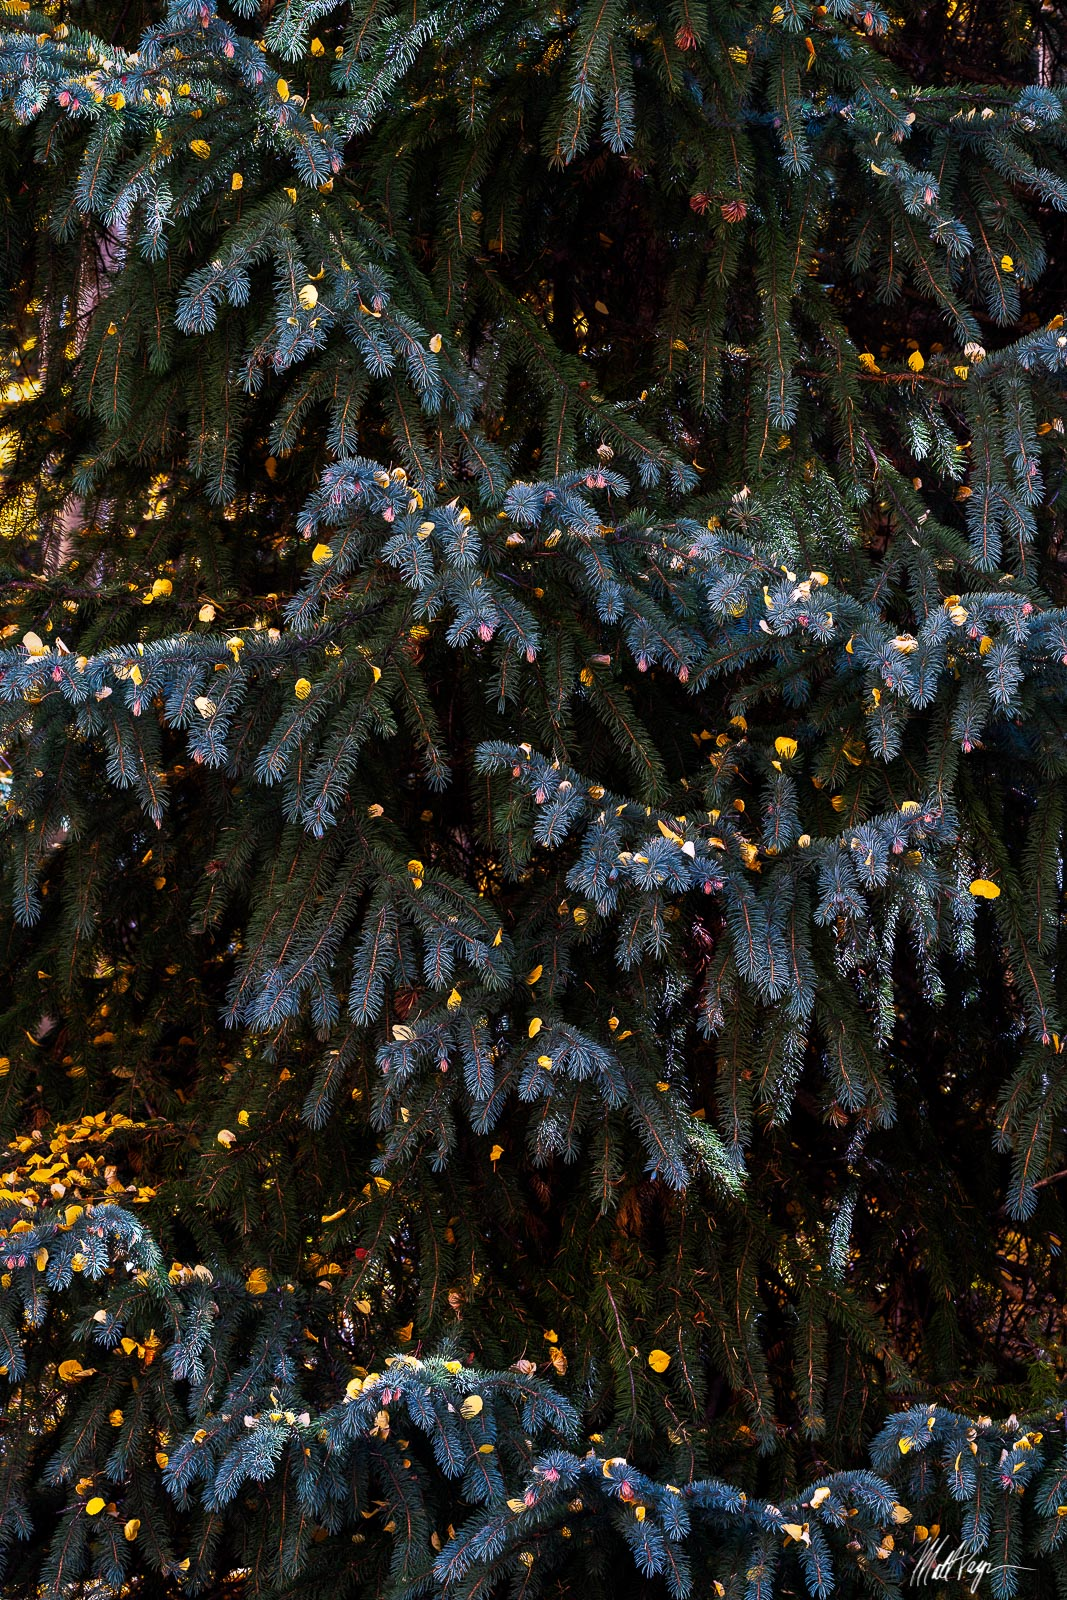 When I walked by this giant Blue Spruce and saw all of the fallen aspen leaves on its boughs, I could not help but take a photograph...